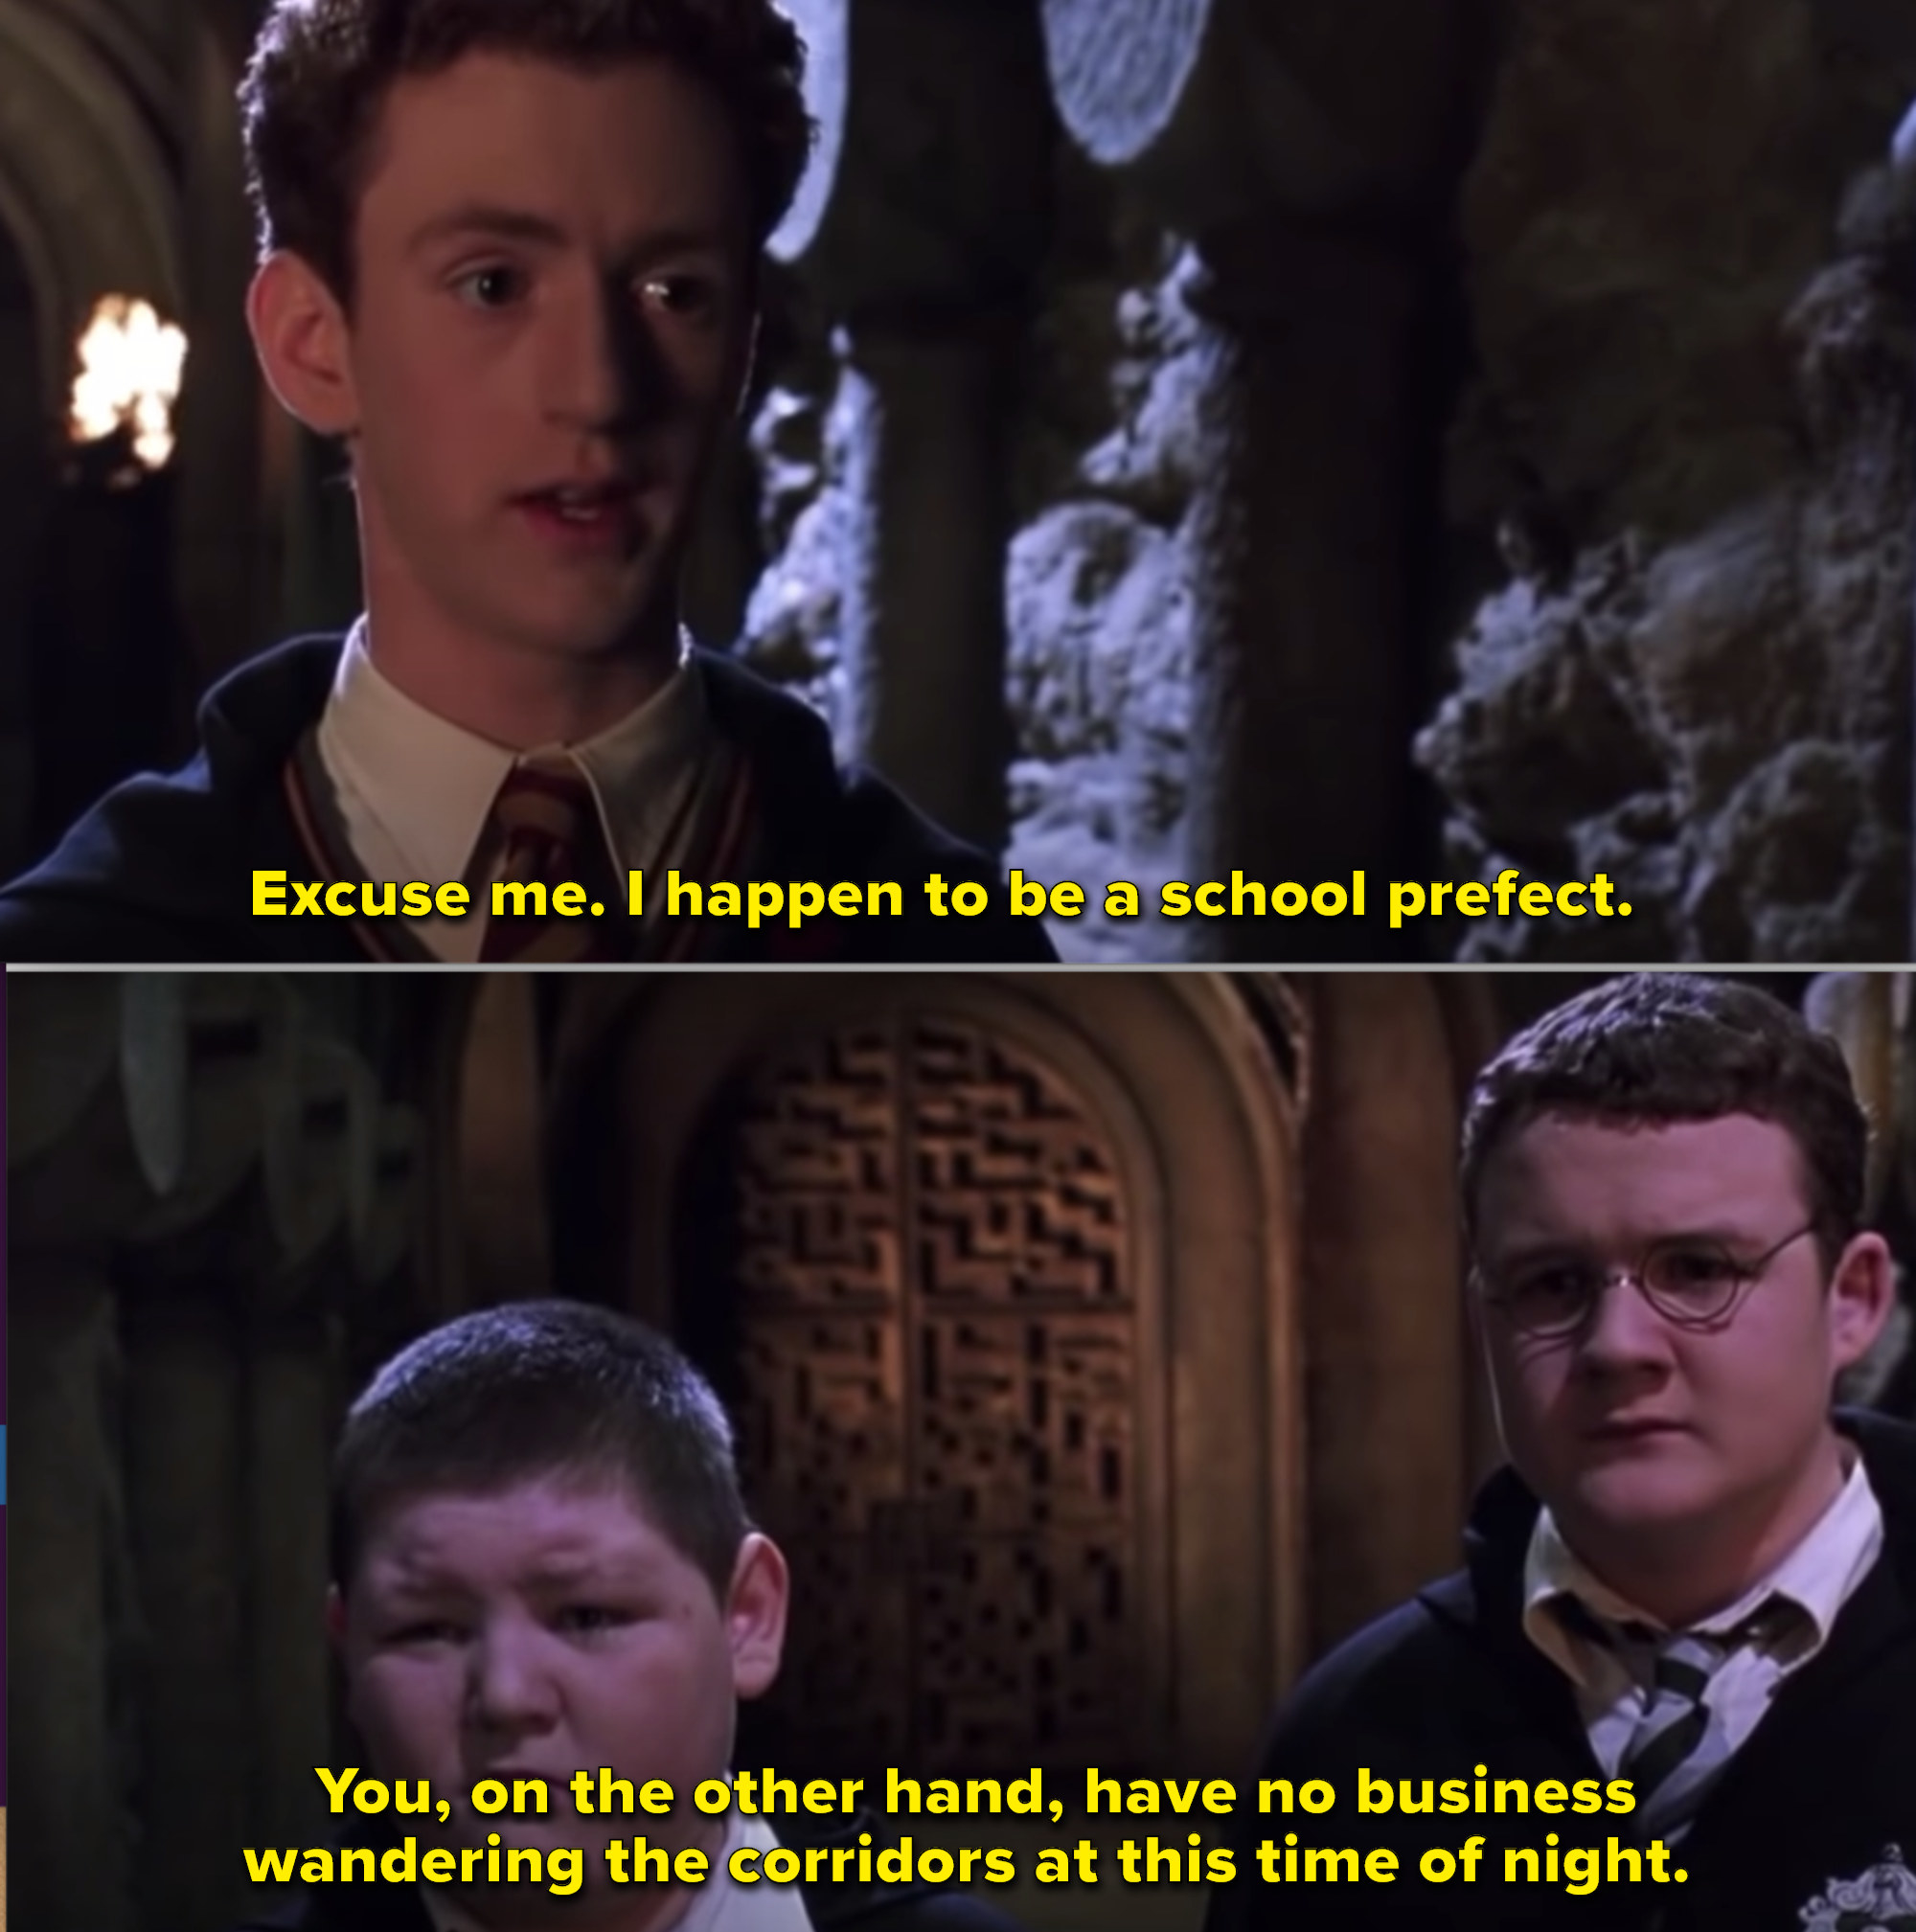 Percy showing his rank in the dungeon at Hogwarts